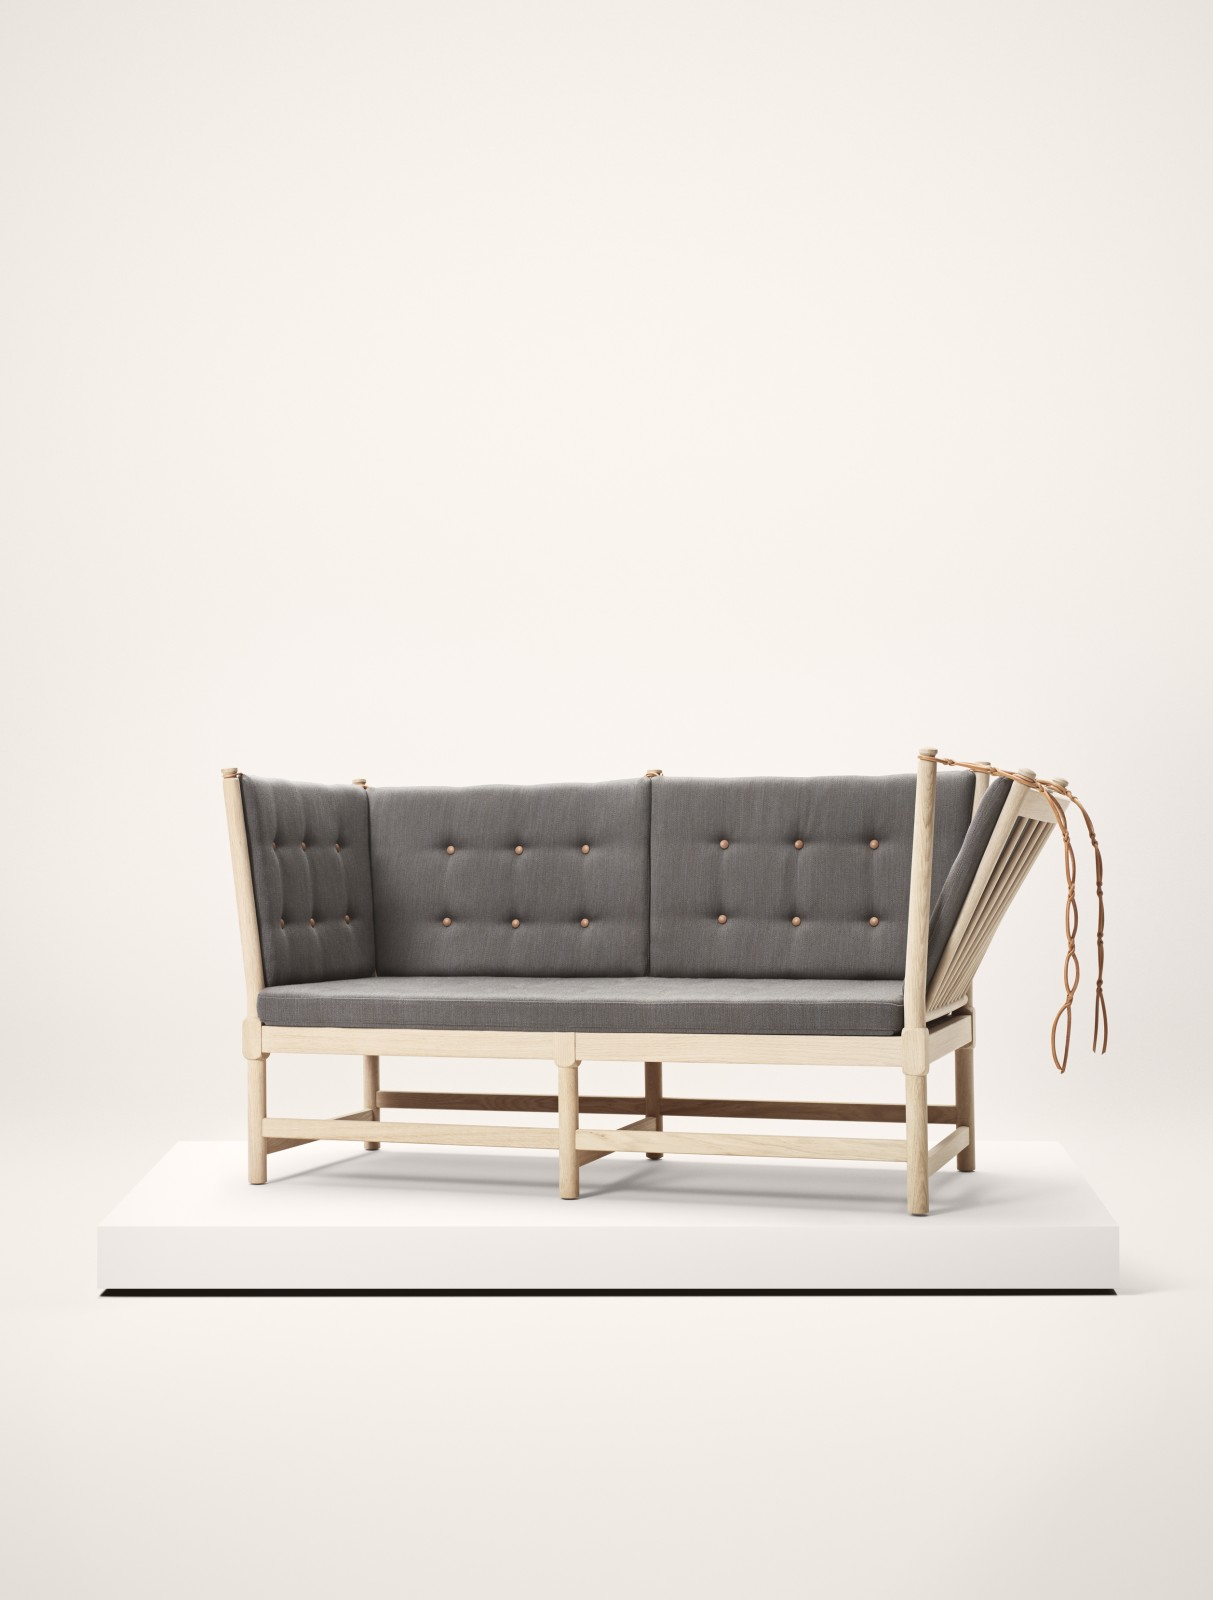 Spoke-Back Sofa, 2 Seater With Pattern Upholstery With Buttons, Beech lacquered, Remix 2 113